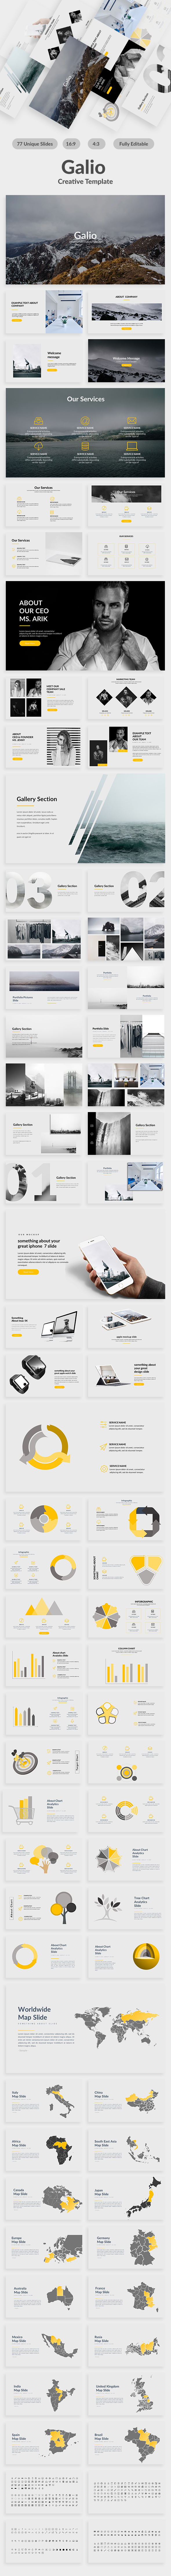 Galio Creative Powerpoint Template - Creative PowerPoint Templates